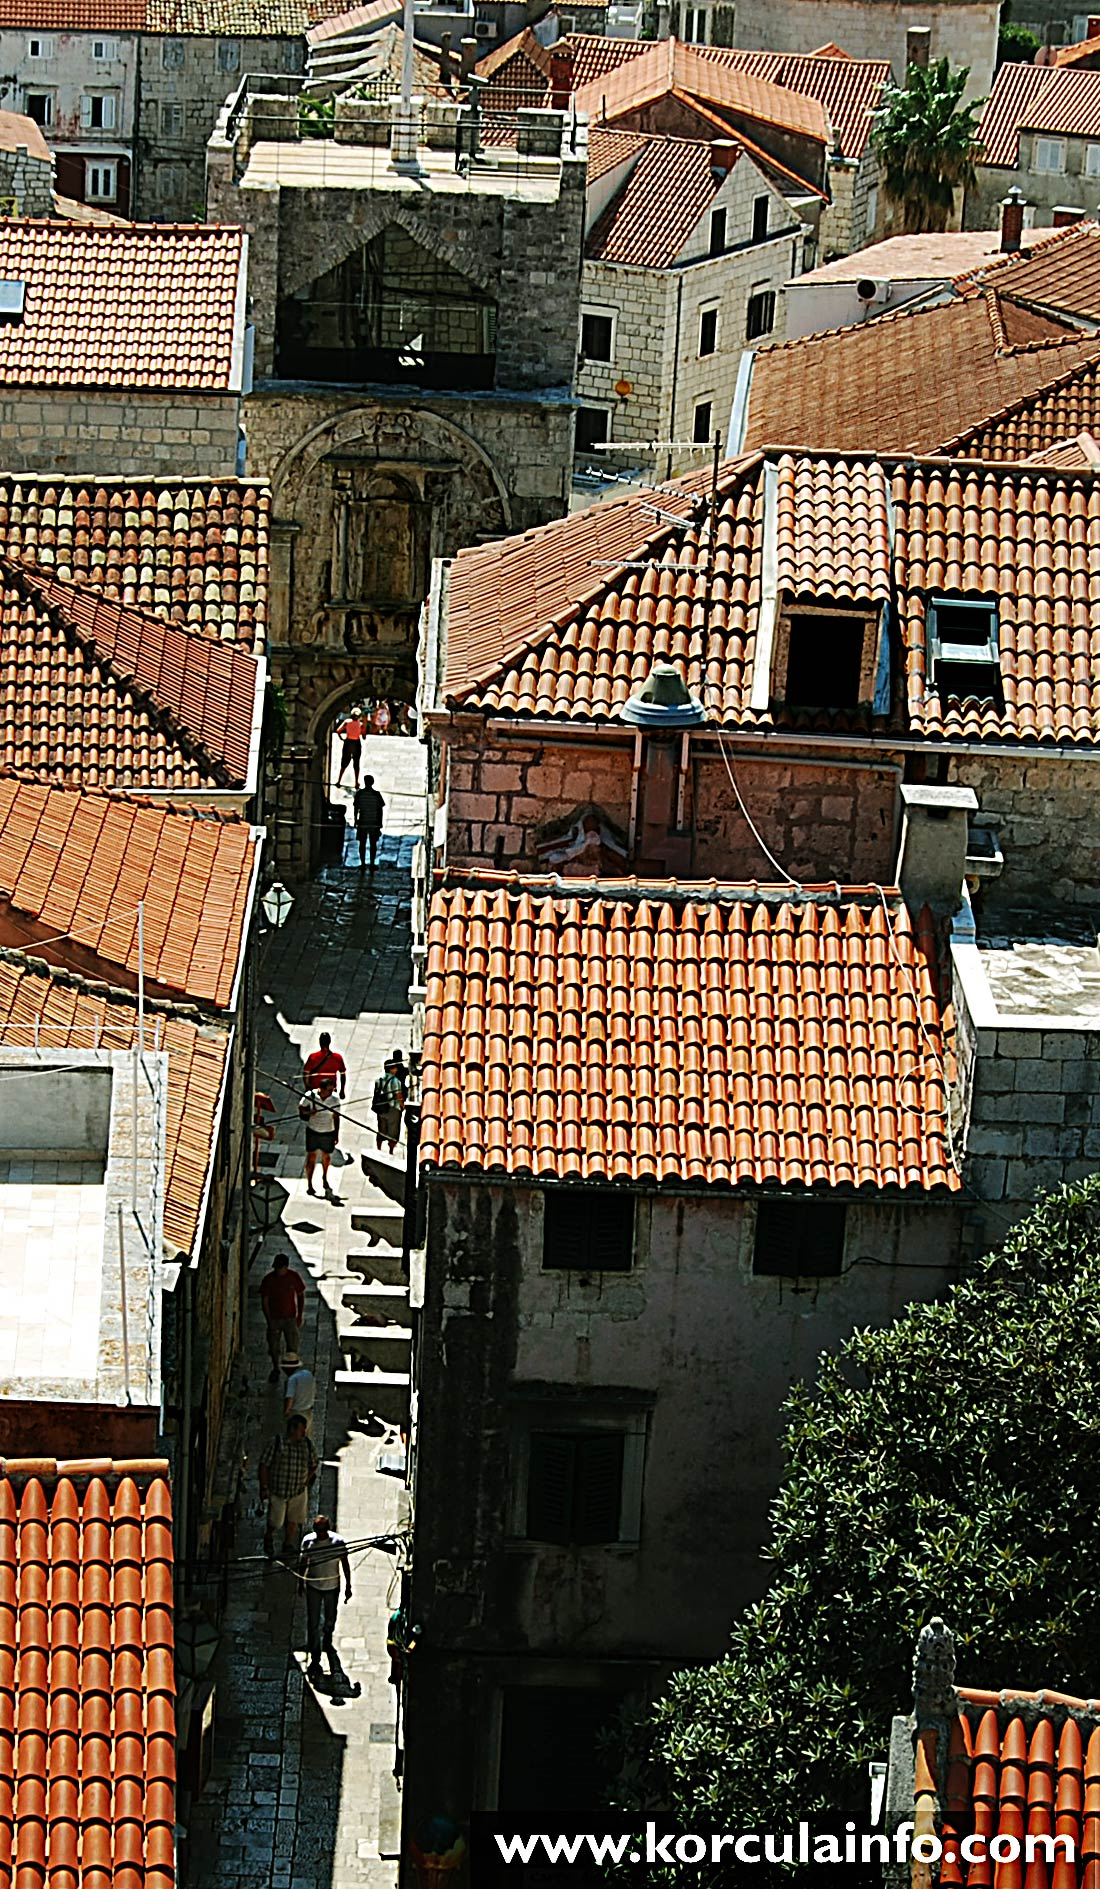 Views over Old Town's entrance from the Tower of St Mark's Cathedral